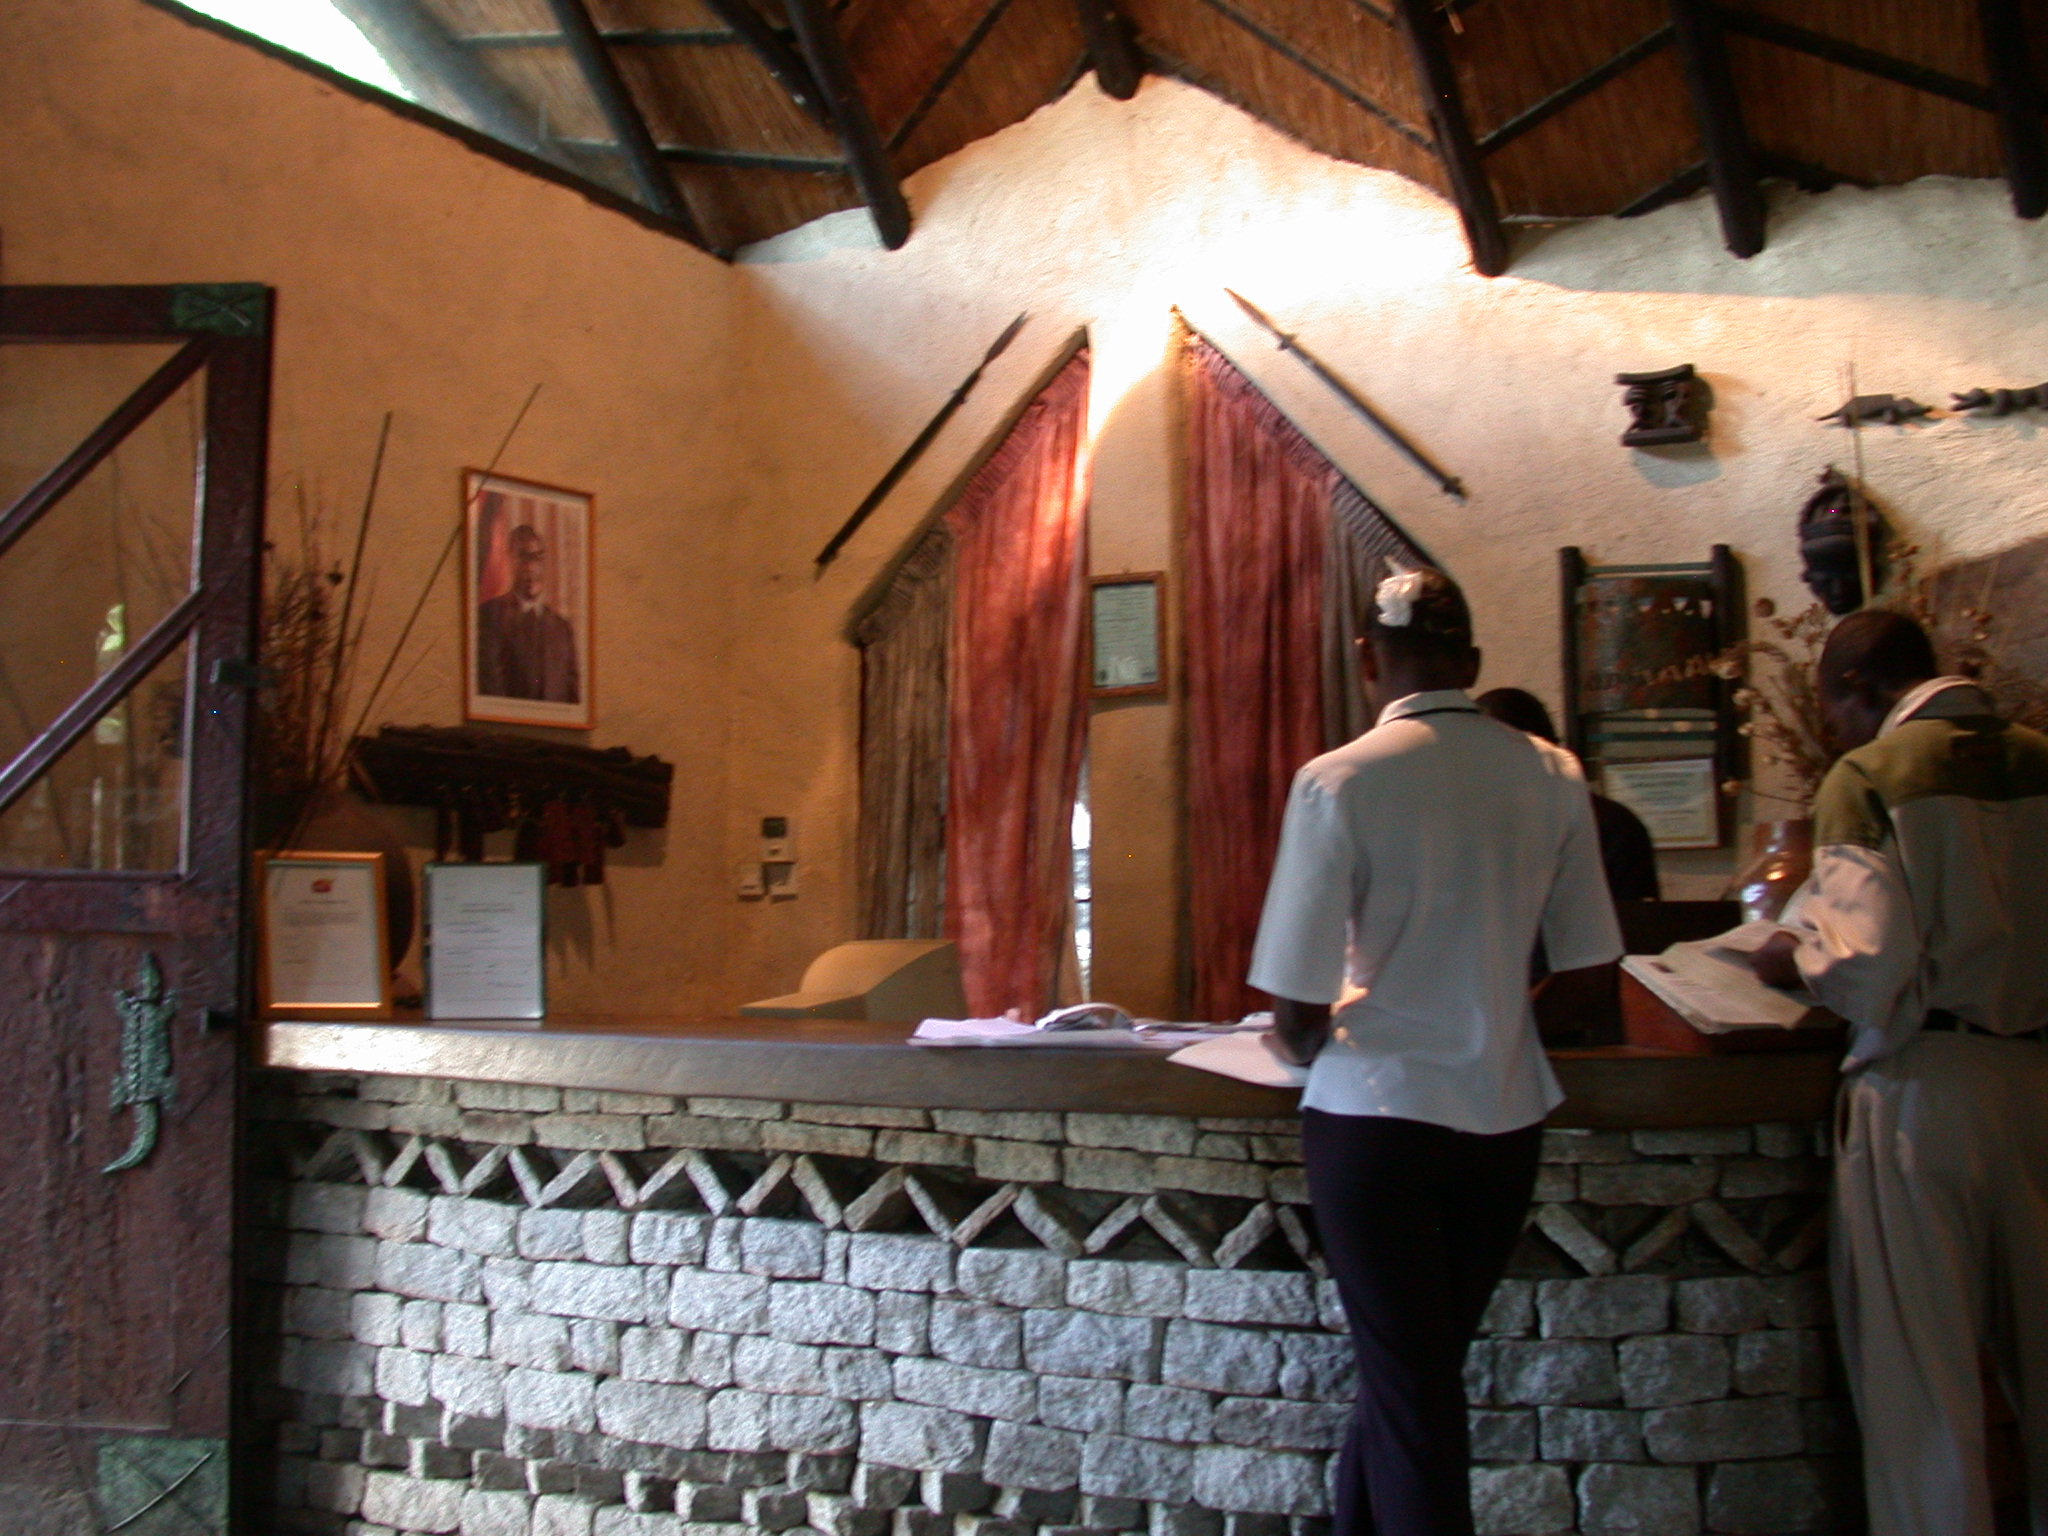 Reception Desk at the Ancient City Lodge, Great Zimbabwe, Outside Masvingo, Zimbabwe